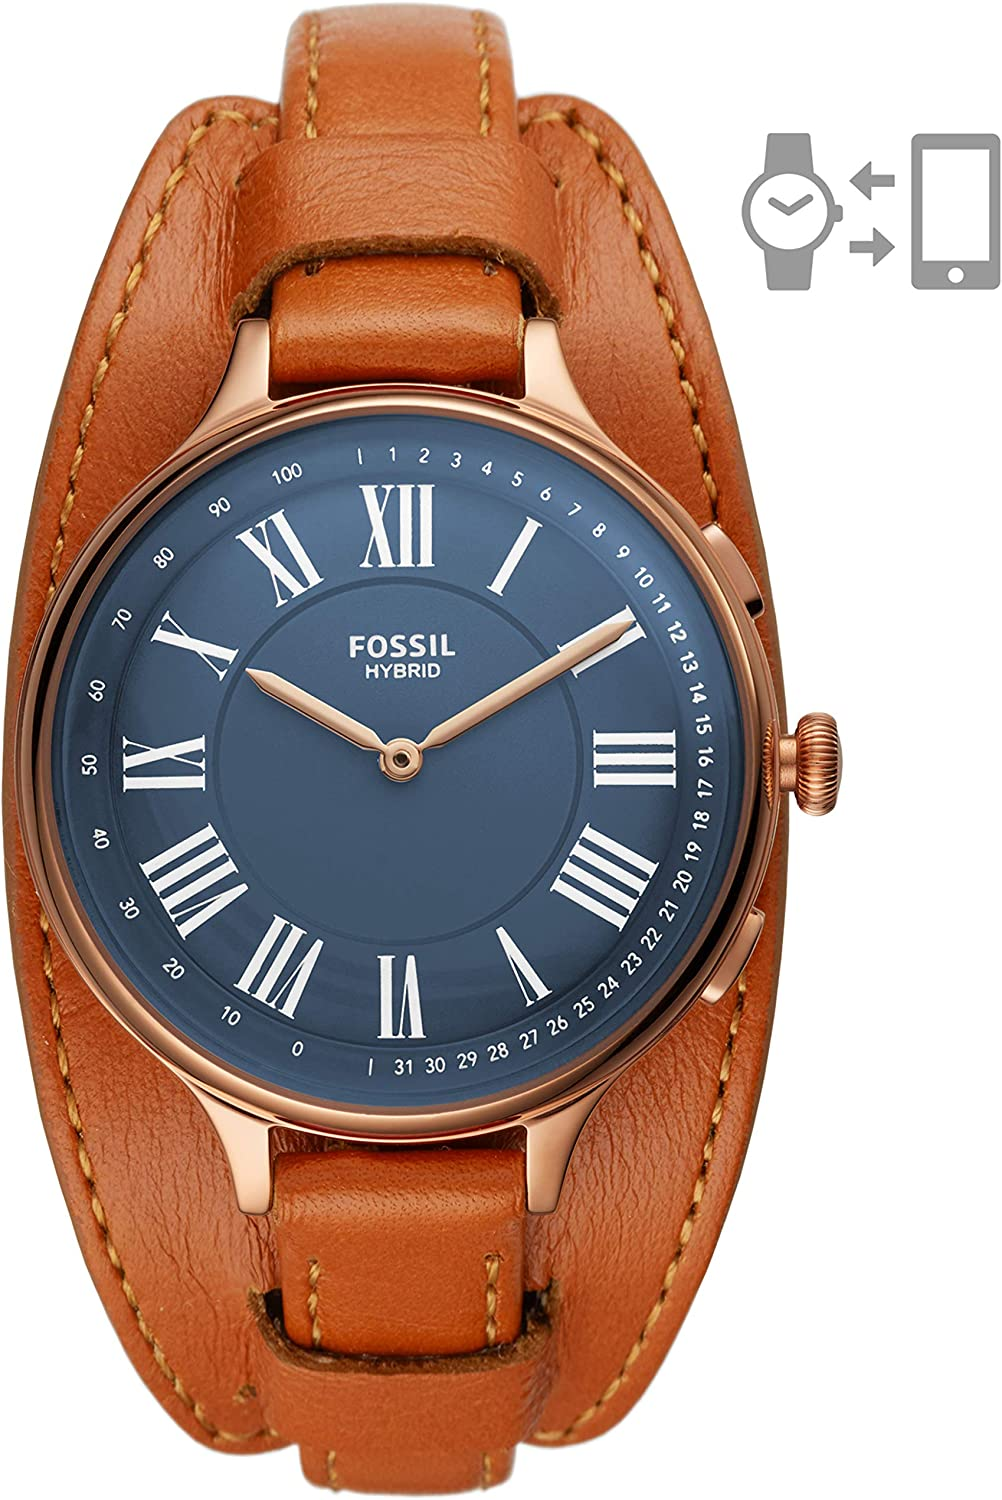 Fossil Women's Eleanor Stainless Steel and Leather Hybrid Smartwatch with Activity Tracking and Smartphone Notifications Rose Gold/Tan